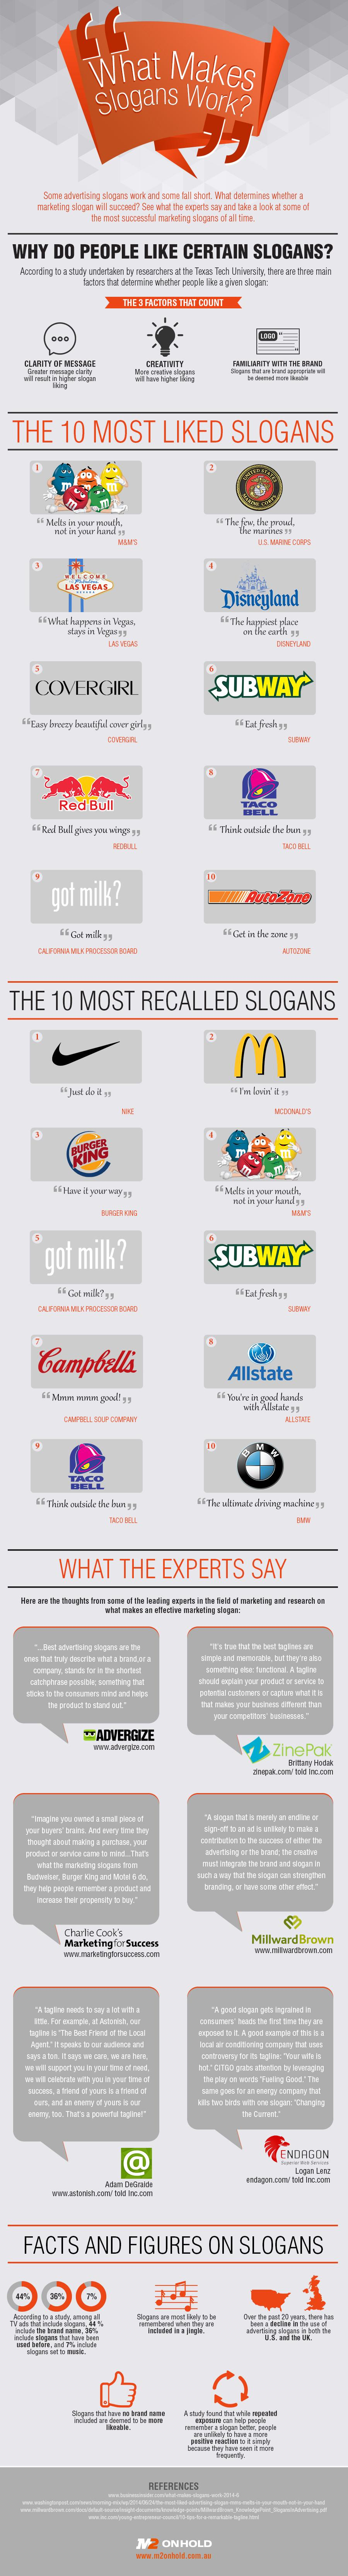 How to Write a Great Tagline or Slogan for Business Purposes